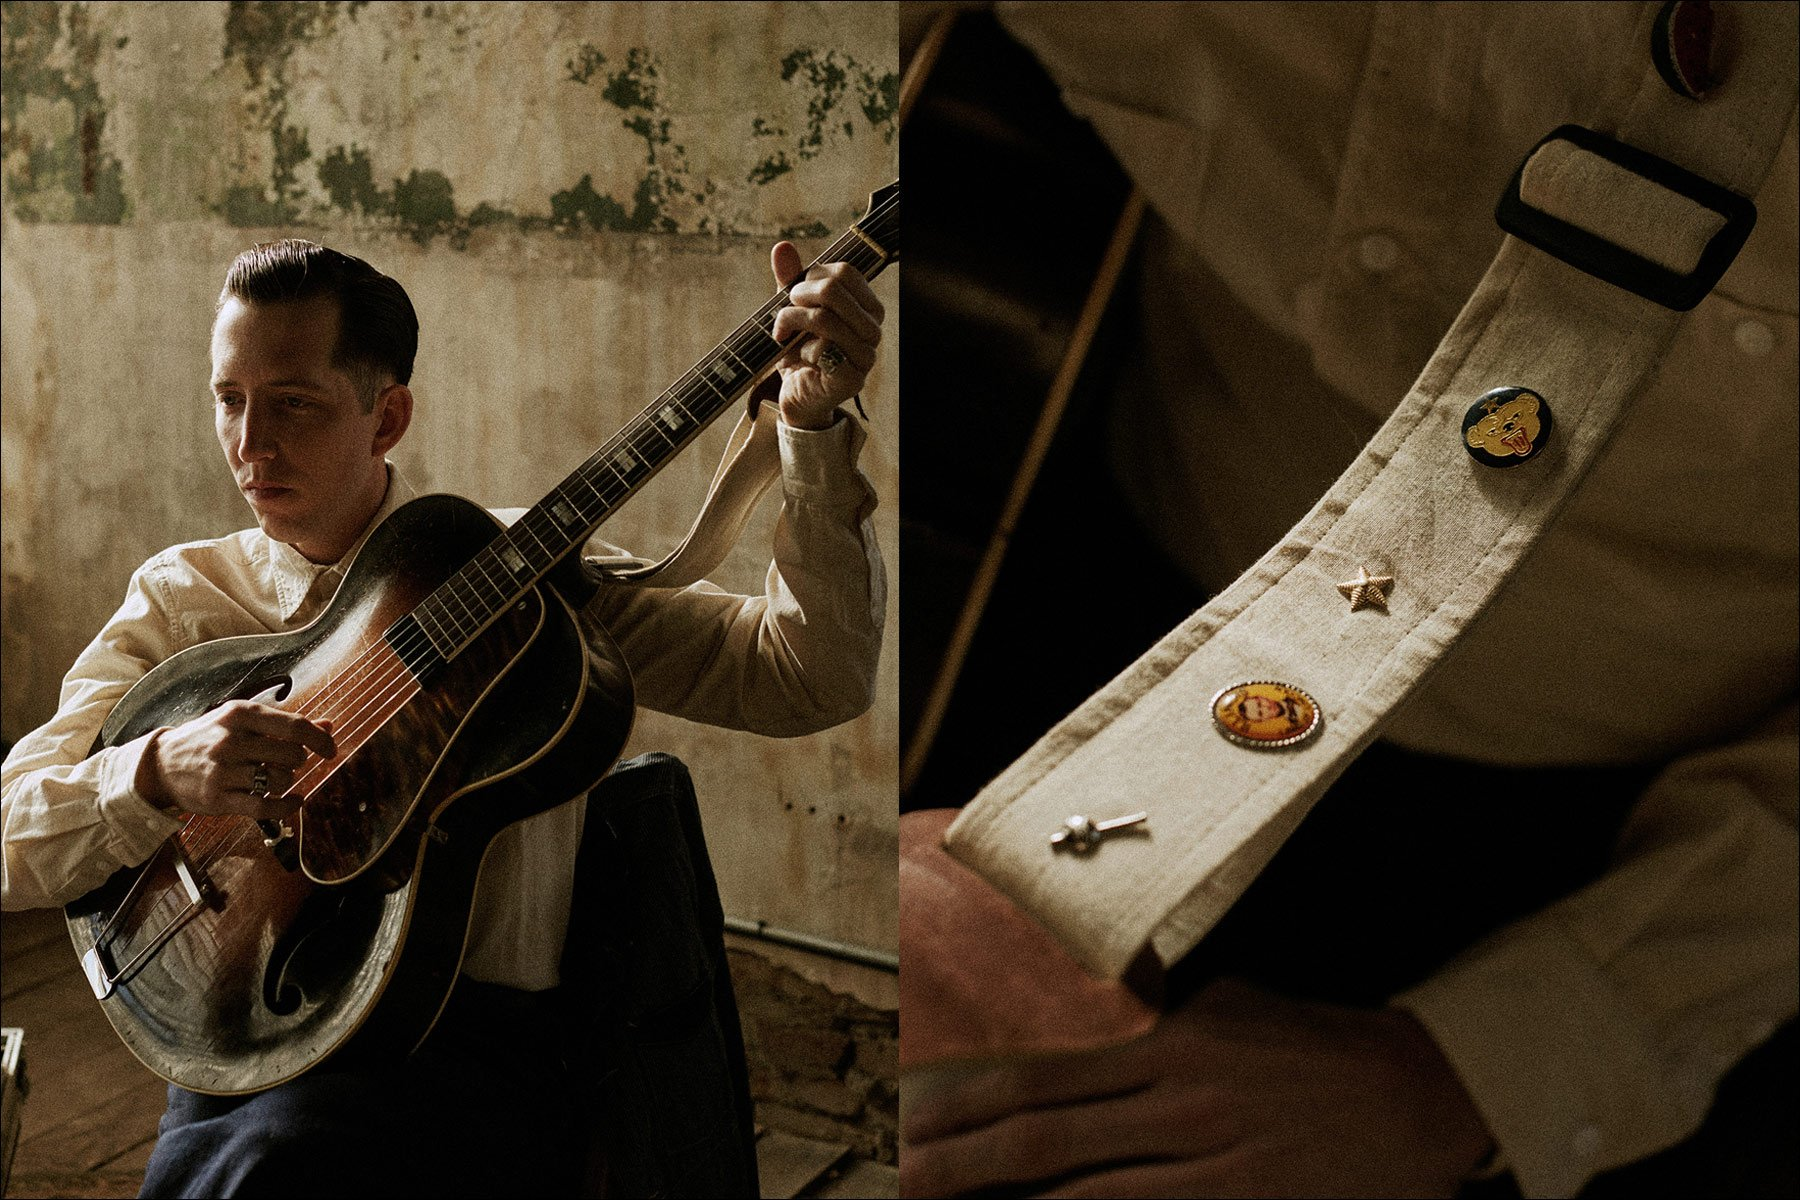 The great Pokey LaFarge photographed by Noah Sahady for his clothing collaboration with Knickerbocker Mfg. Co. Ponyboy magazine NY.